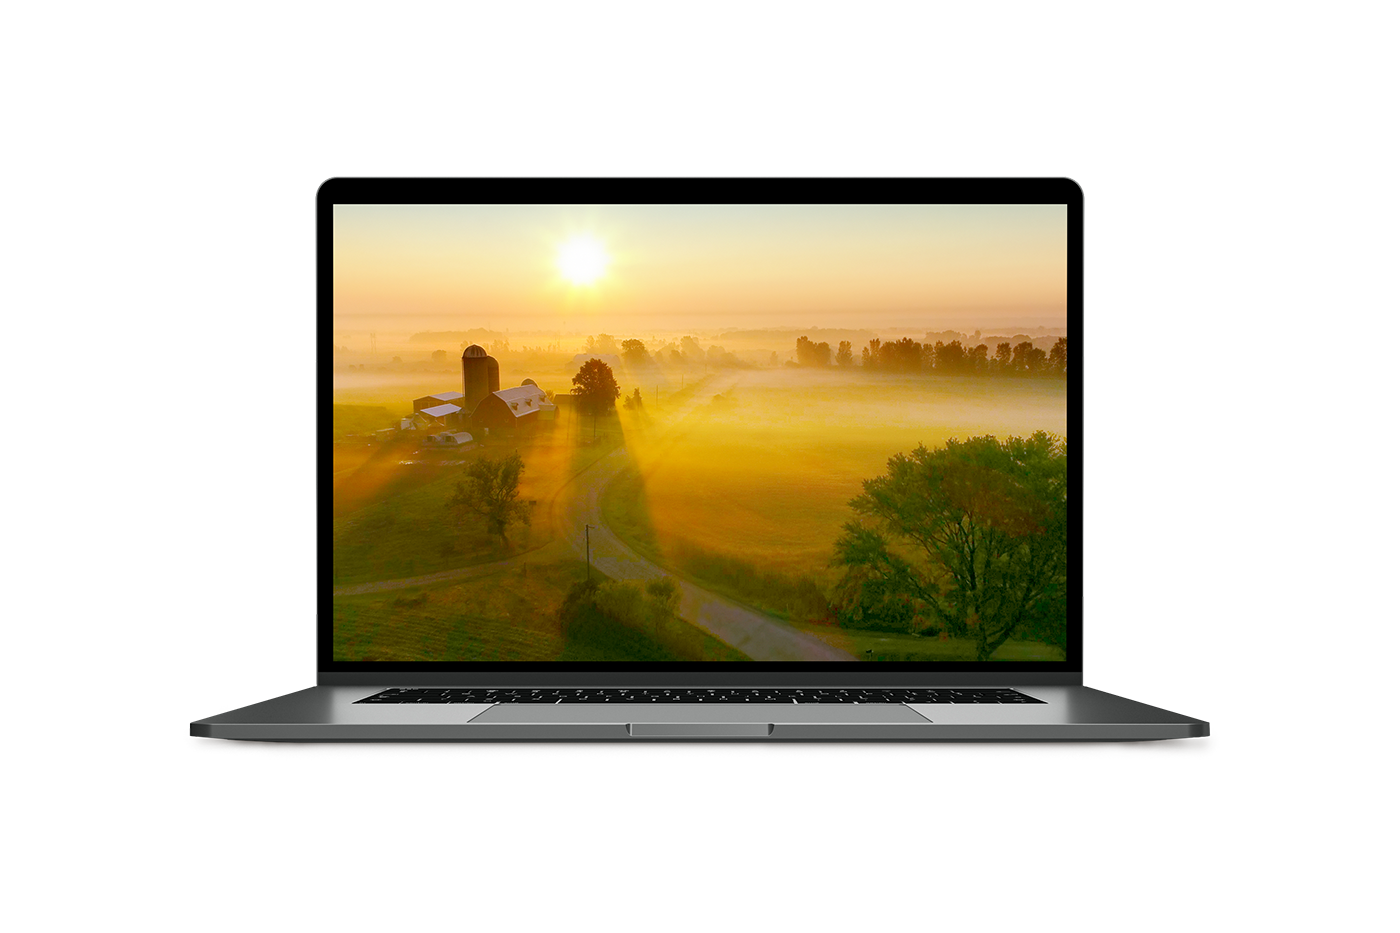 laptop with an image of a farm at sunset